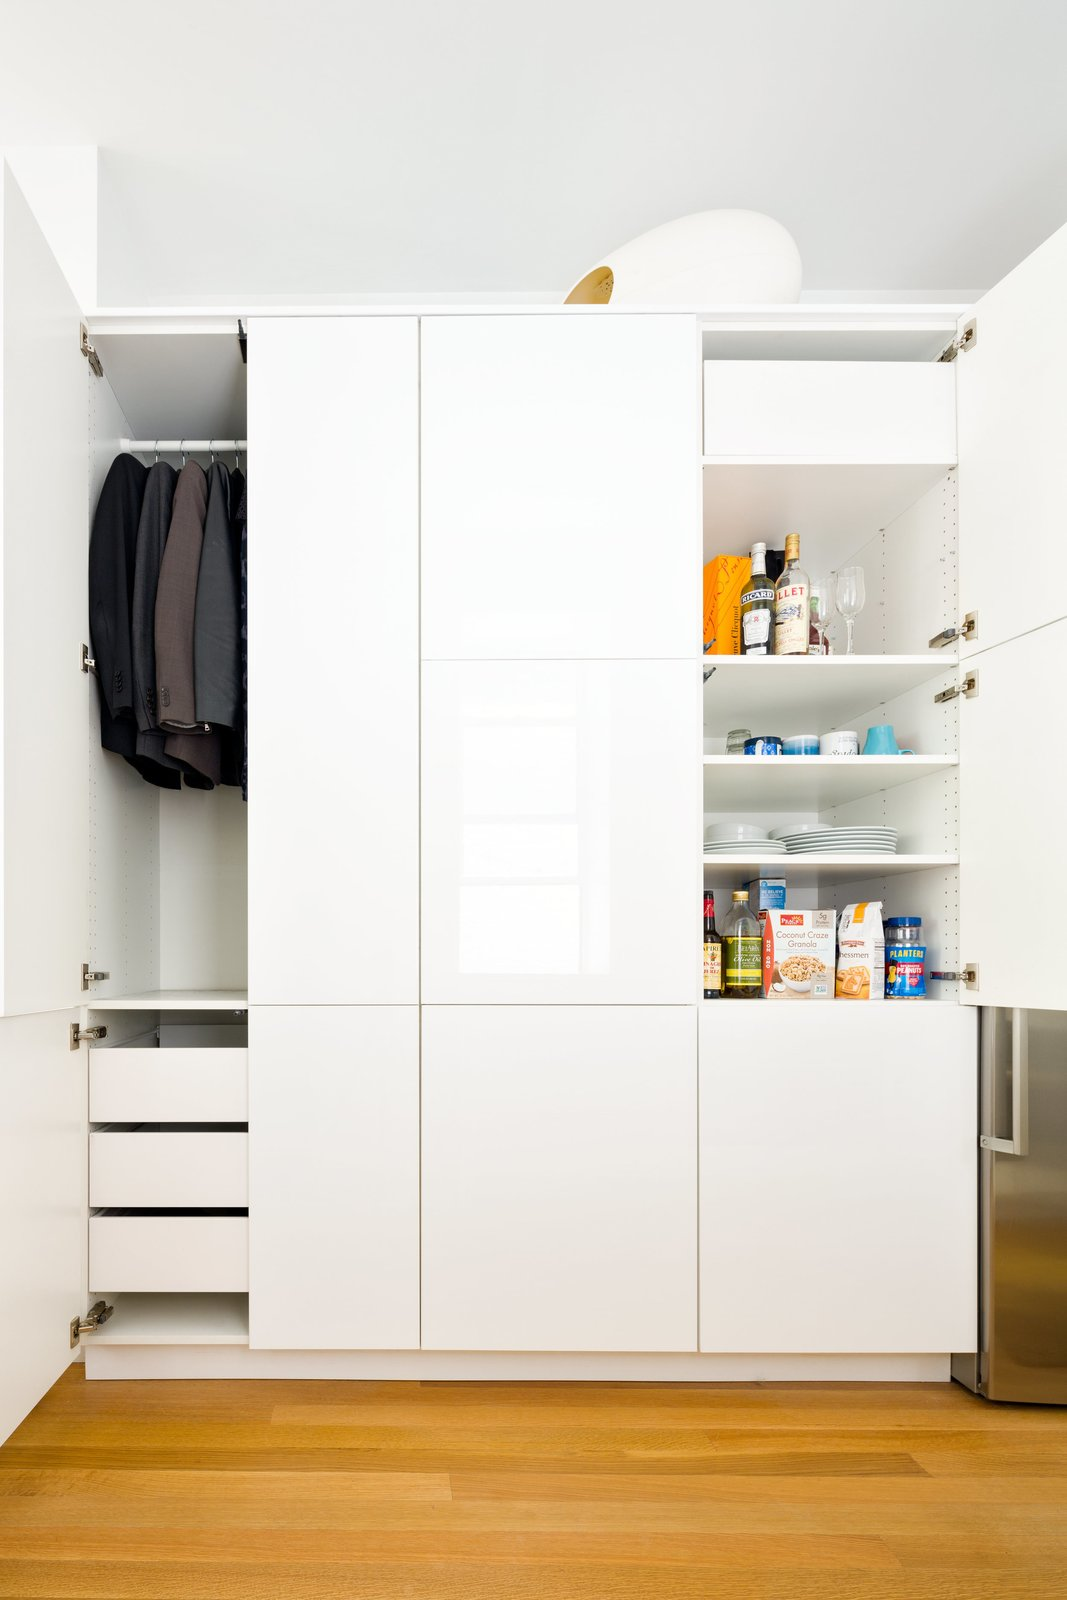 In the kitchen, a single Sektion wardrobe from IKEA is used to stow both clothing and various food and dining items. Throughout the apartment, Krajewski replaced the time-worn flooring, installing new white oak planks by Hull Forest with a buffed oil finish by Waterlox.